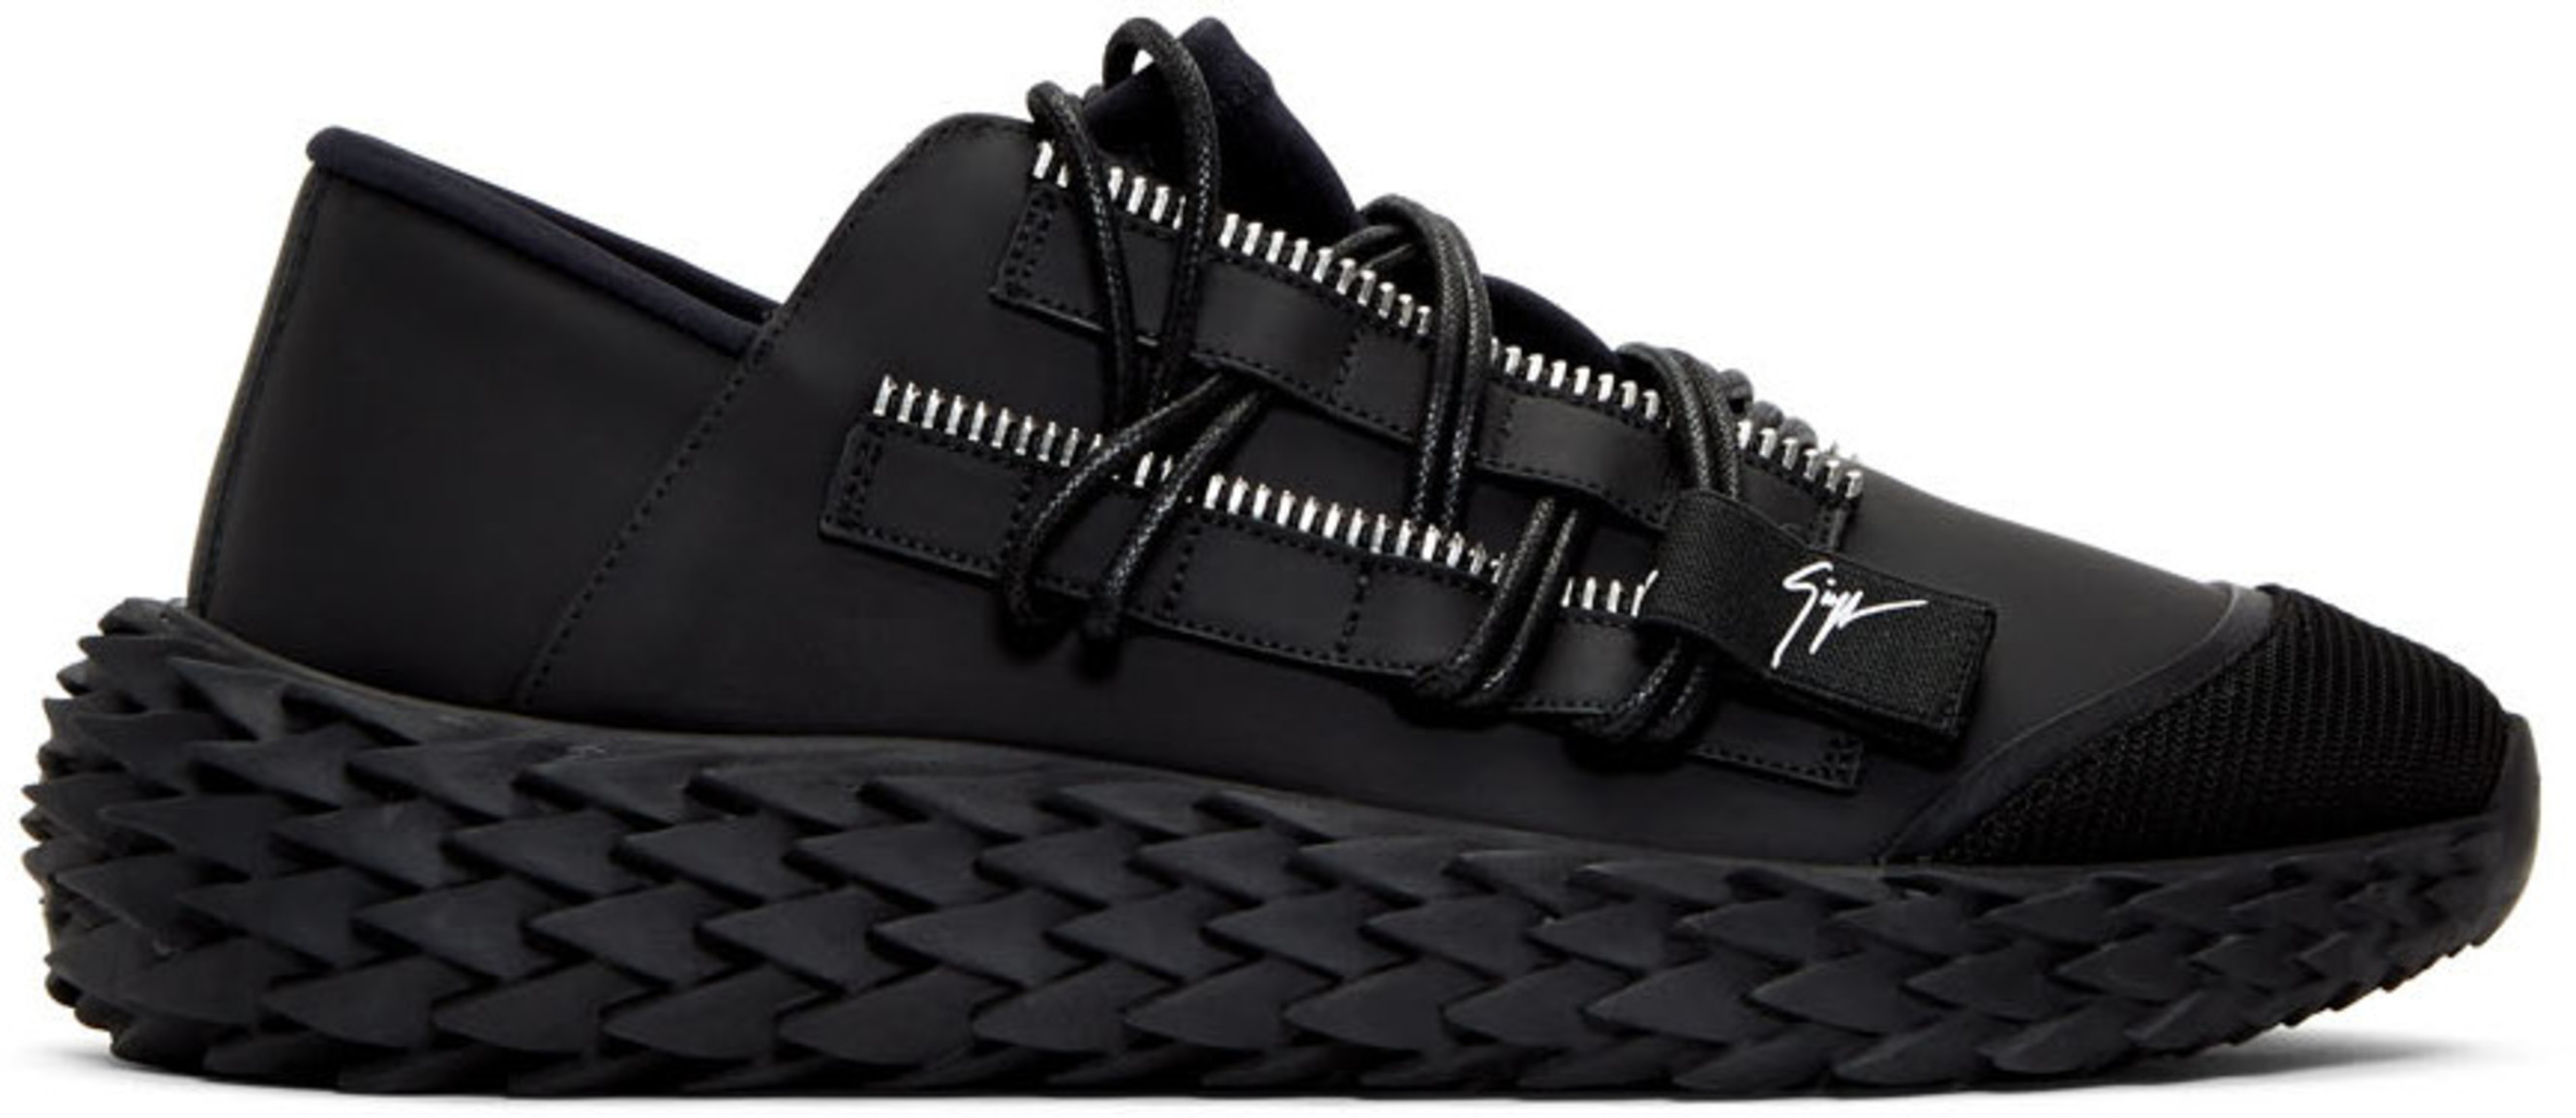 new product d5603 7084d Giuseppe Zanotti for Men FW19 Collection   SSENSE